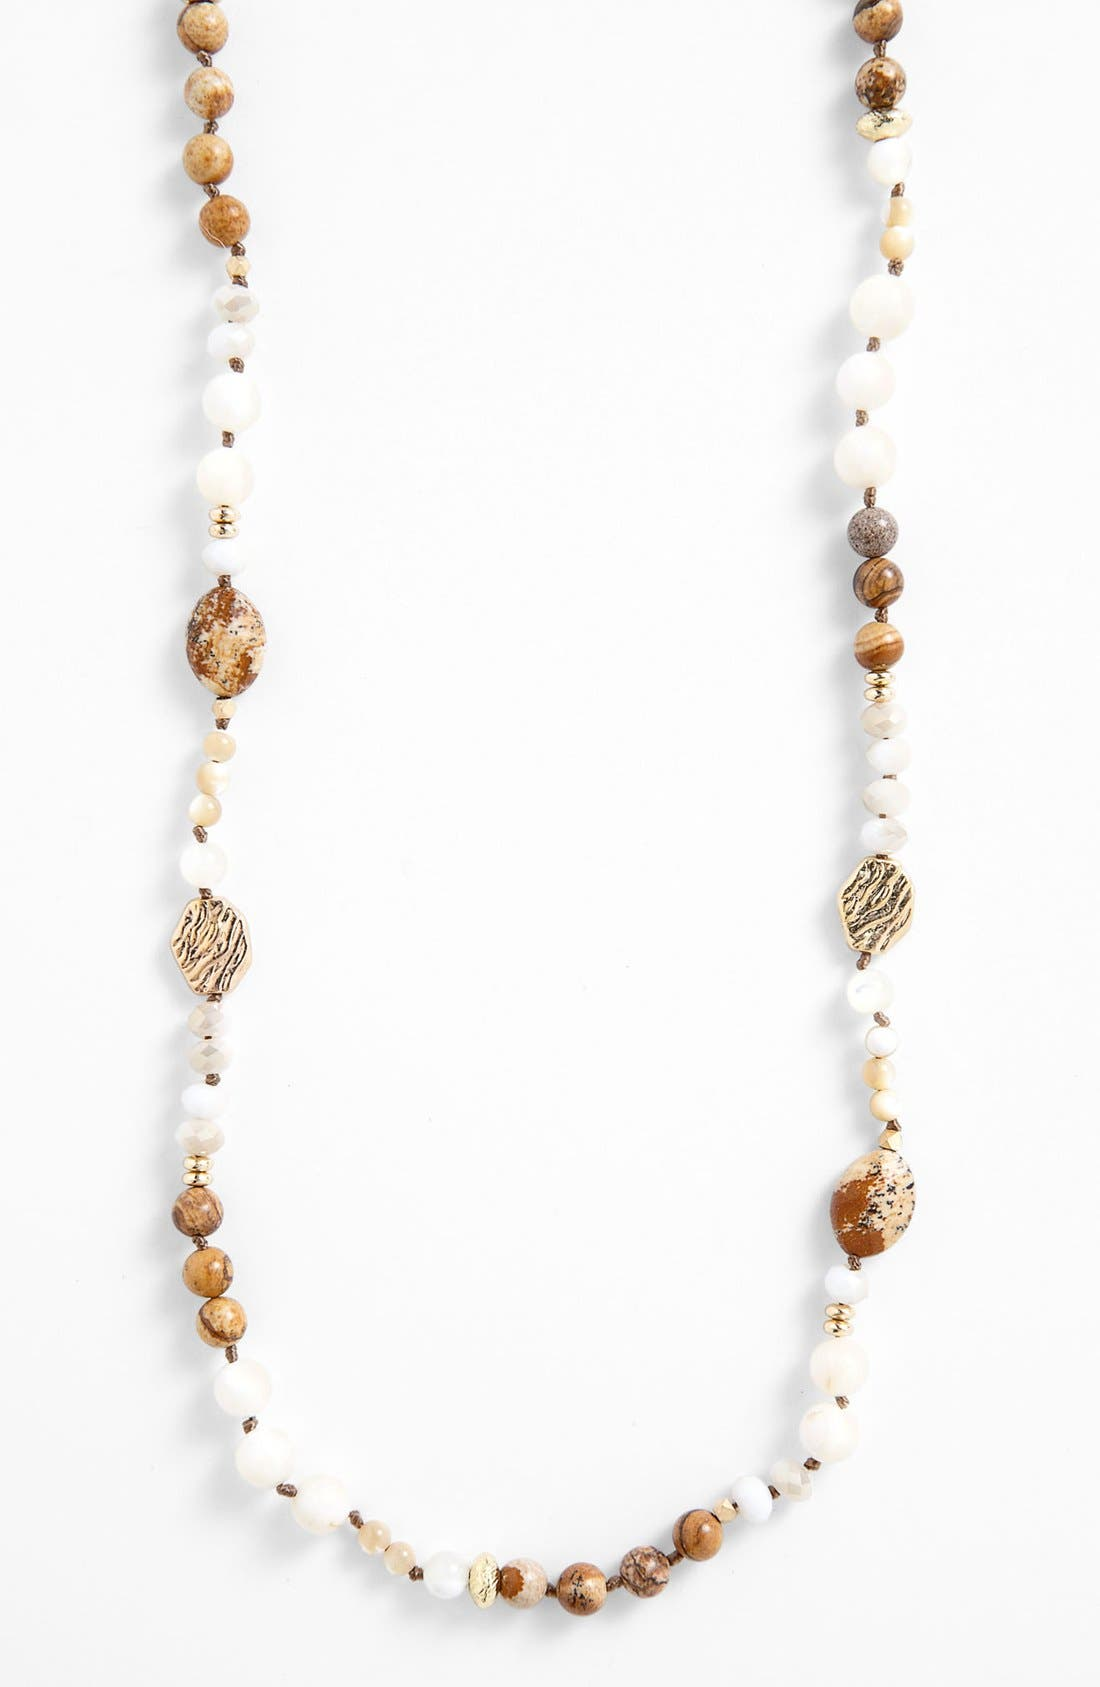 Alternate Image 1 Selected - Nordstrom 'Pebbles' Long Beaded Necklace